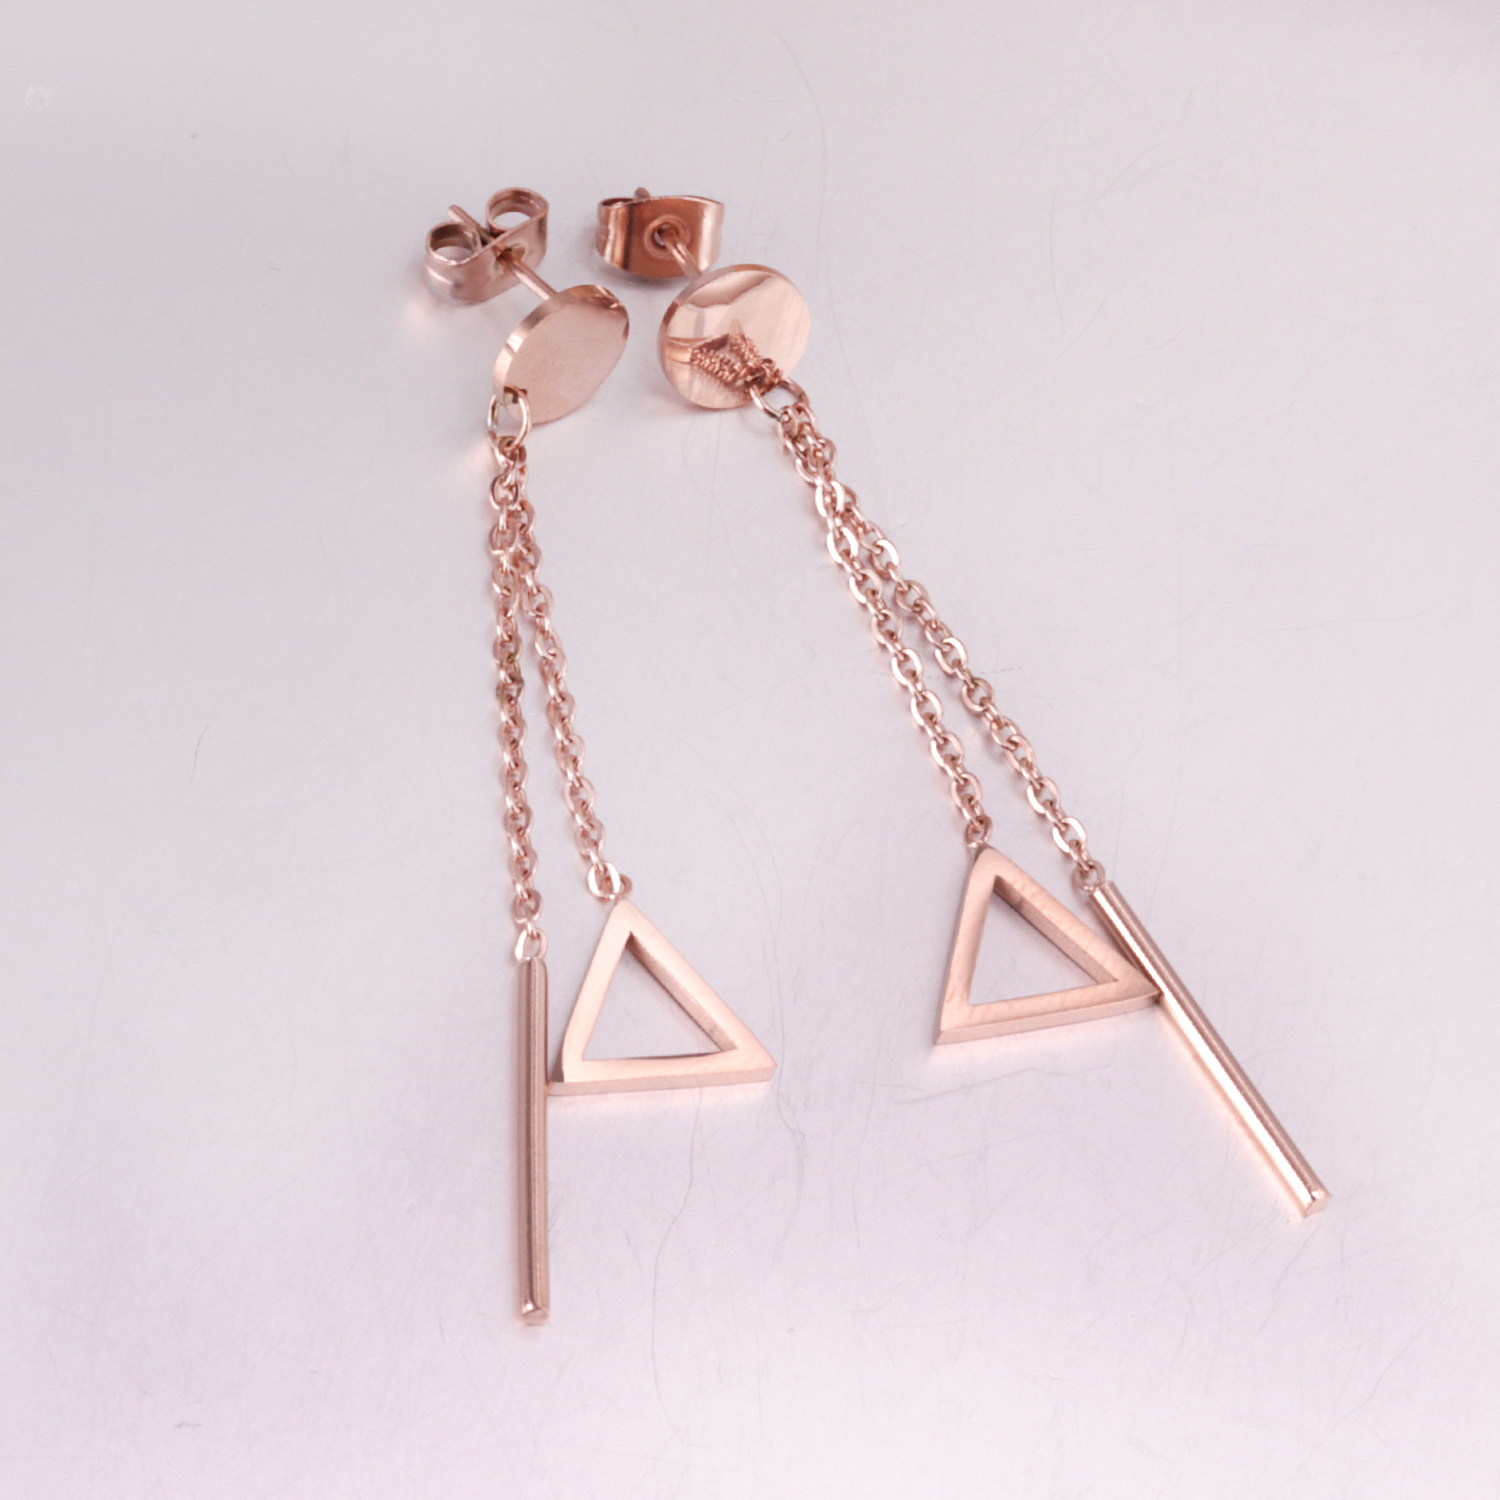 LUXUSTEEL 2018 Fashion Rose Gold Color Triangle Pendant Drop Earrings Stainless Steel Chain Tassel Earring For Women/Girl Party